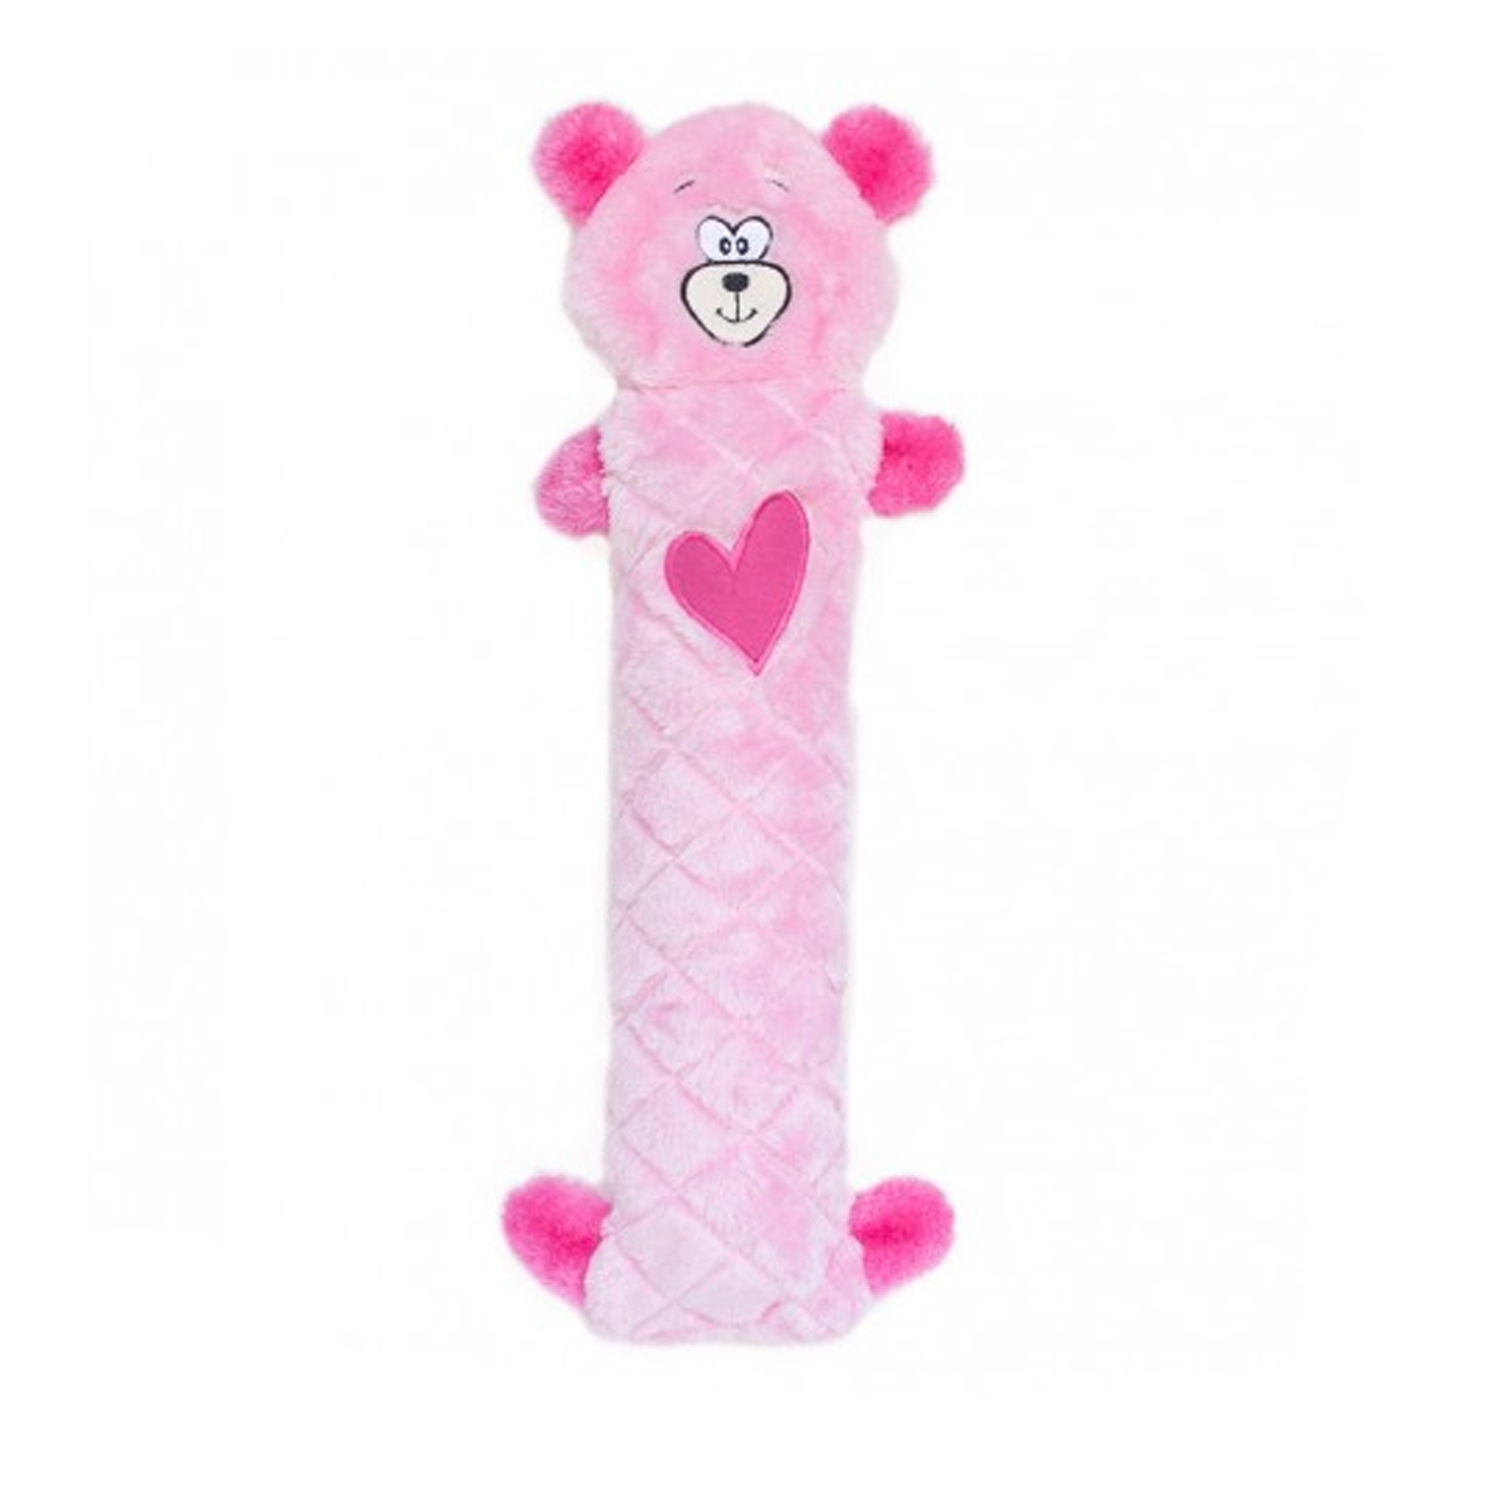 Jigglerz Valentine's Dog Toy - Pink Bear